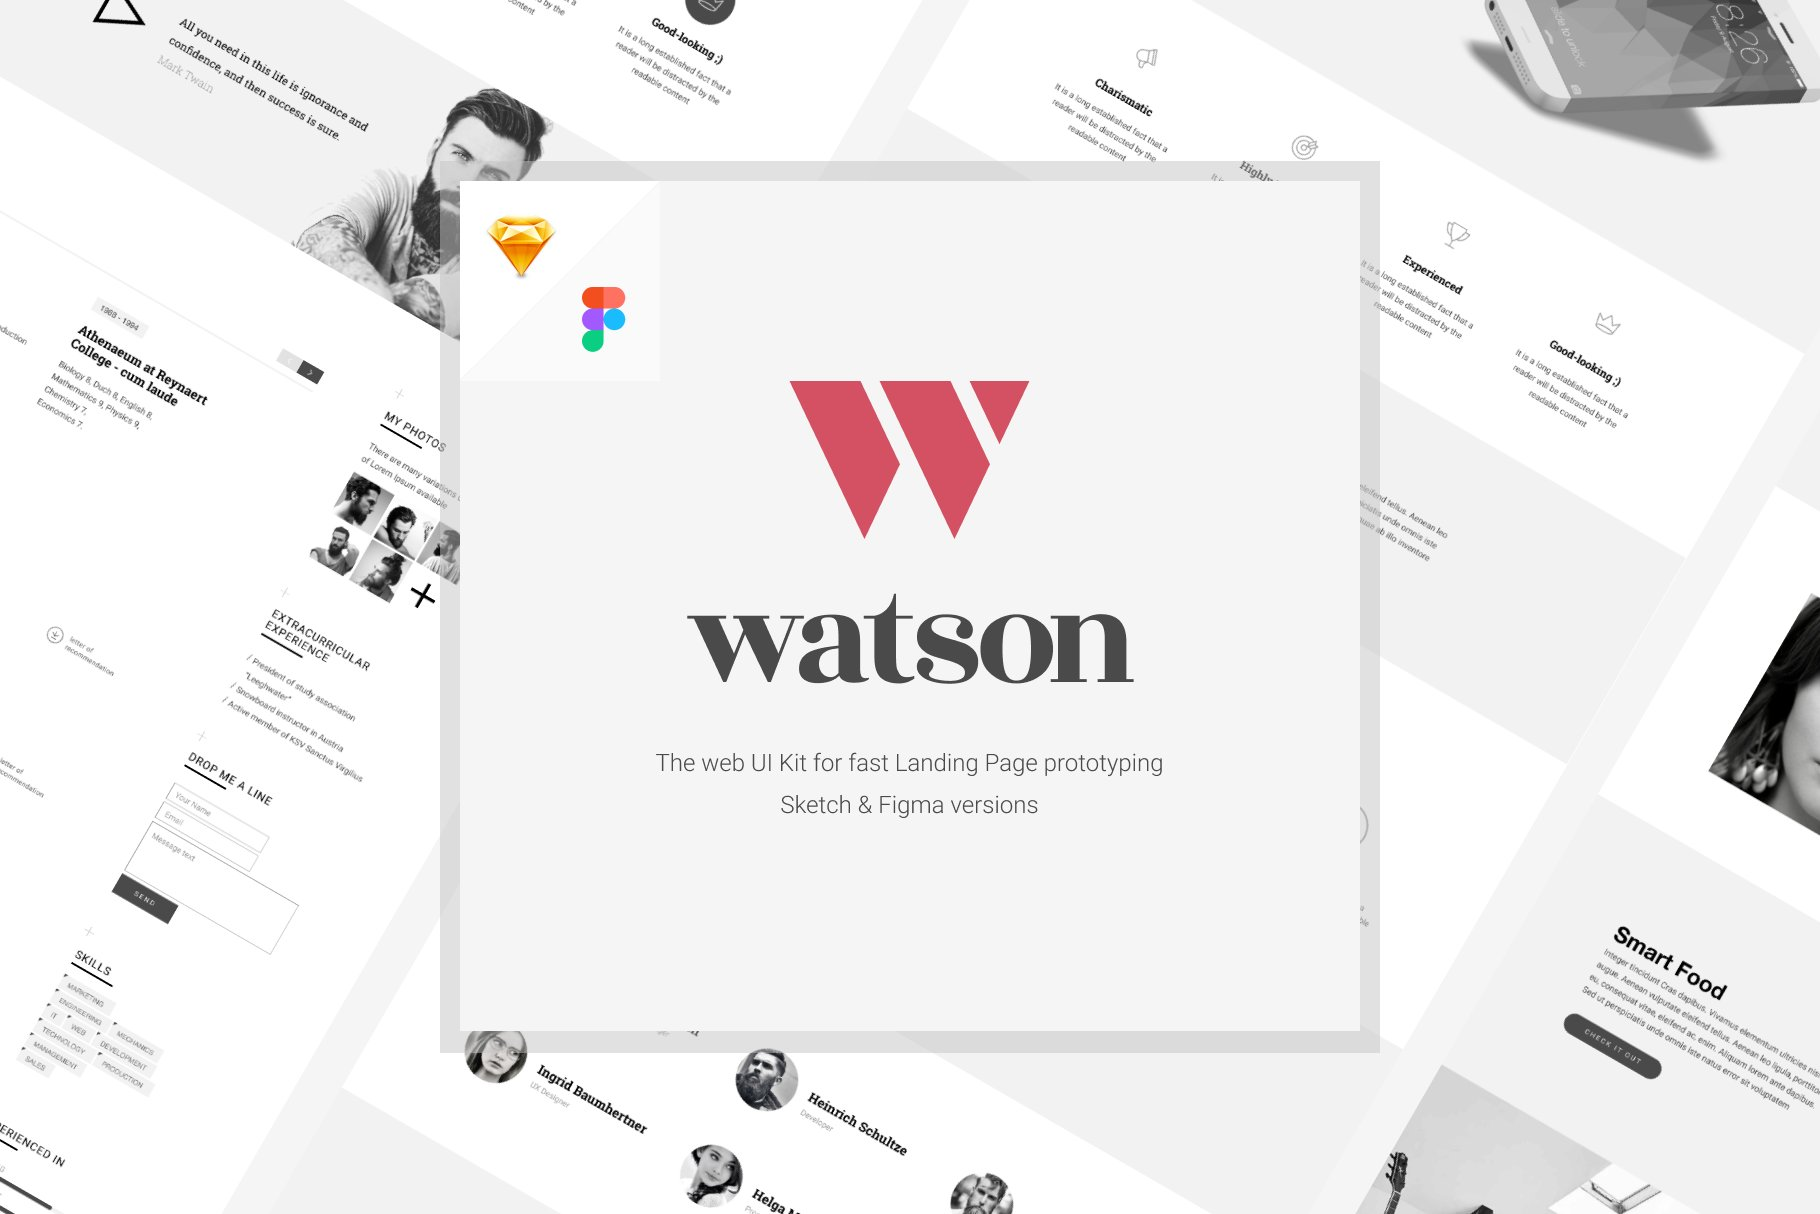 Dr Watson UI Kit for Sketch & Figma ~ UI Kits and Libraries